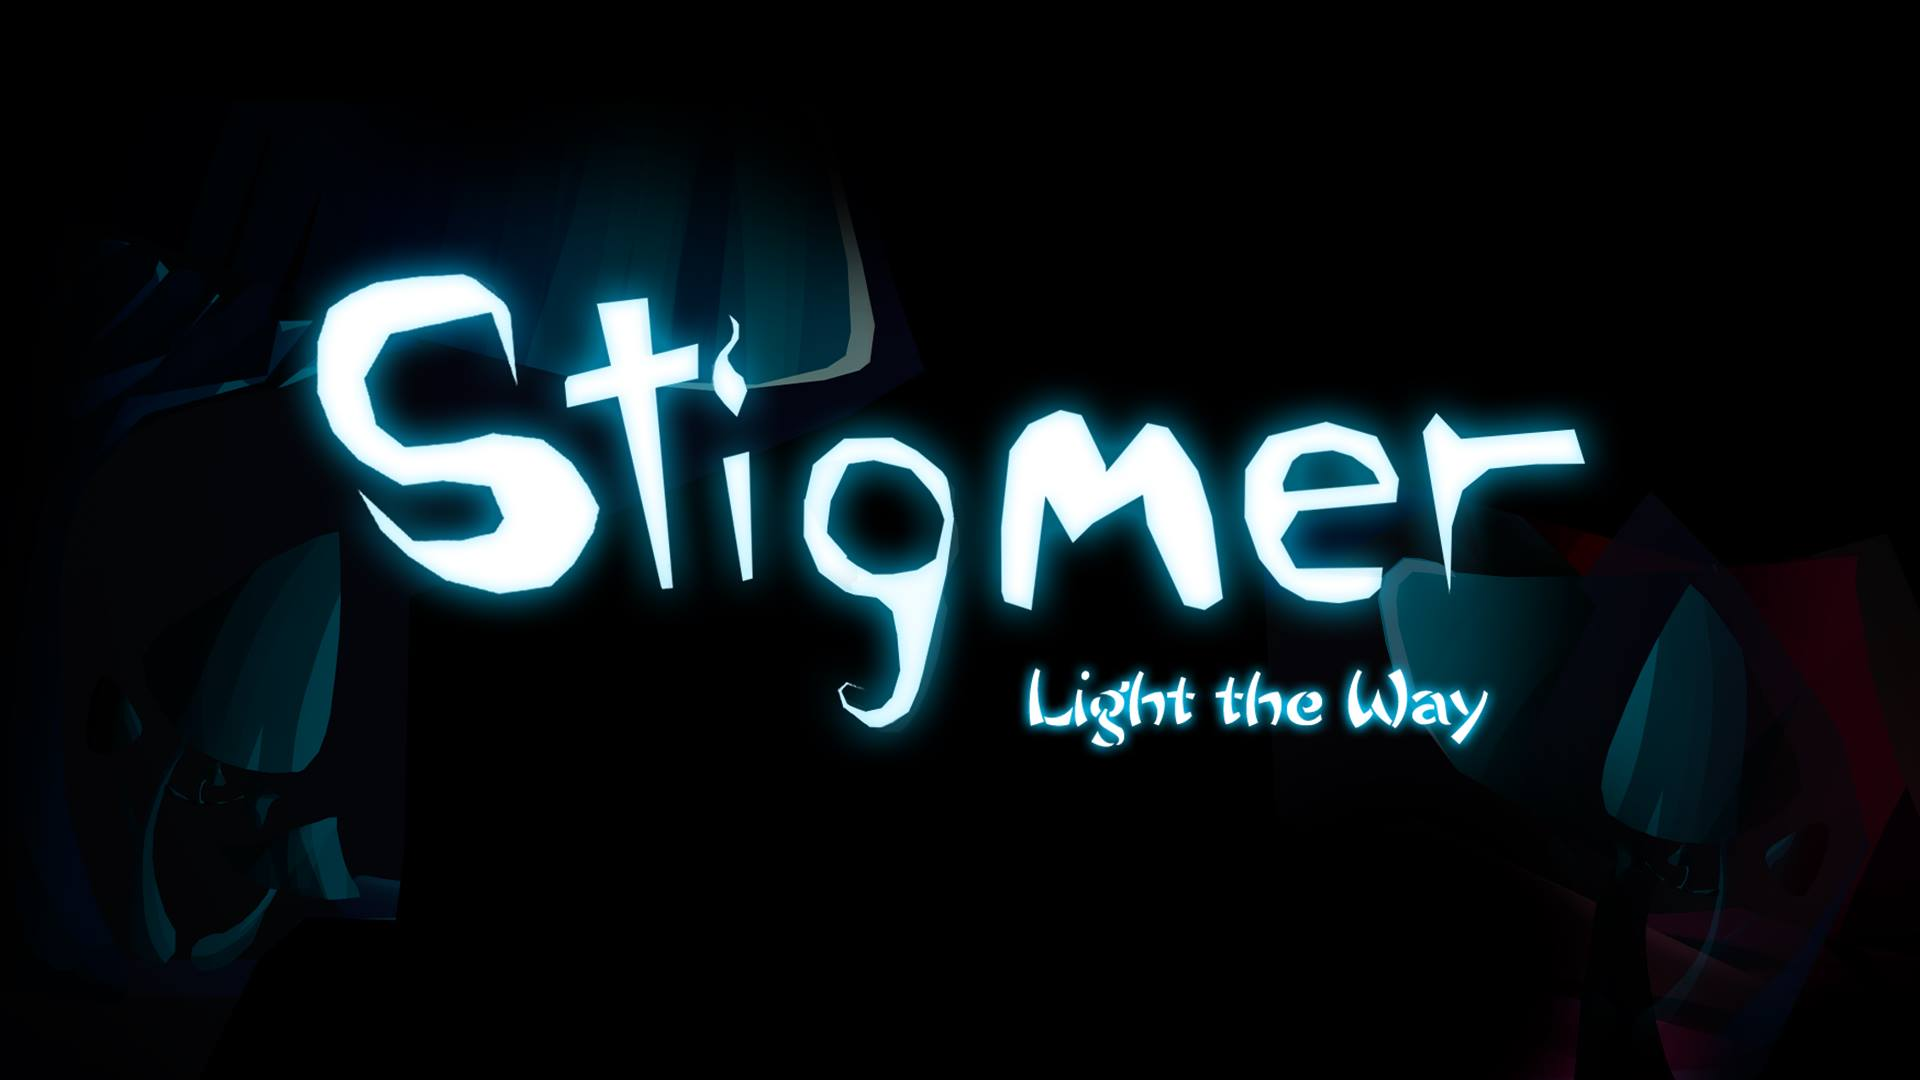 STIGMER : Light The Way